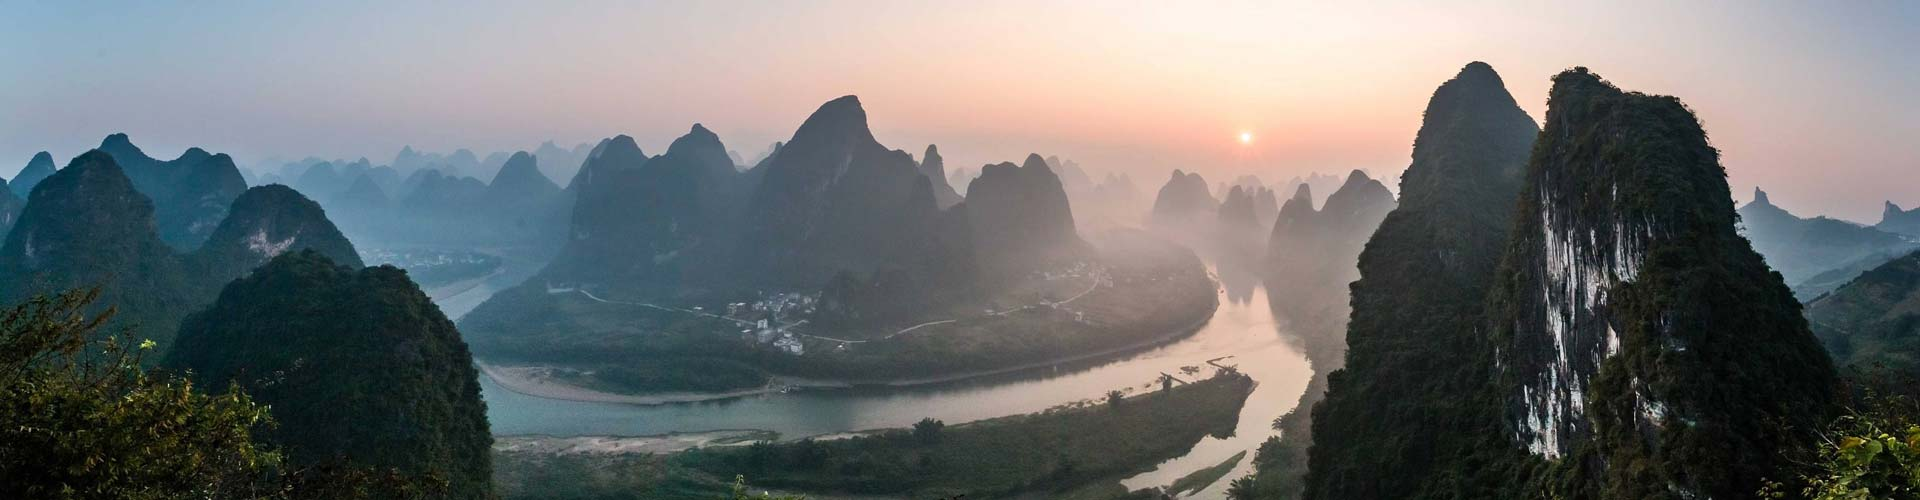 2 Days Guilin Tour from Guangzhou by High-speed Train